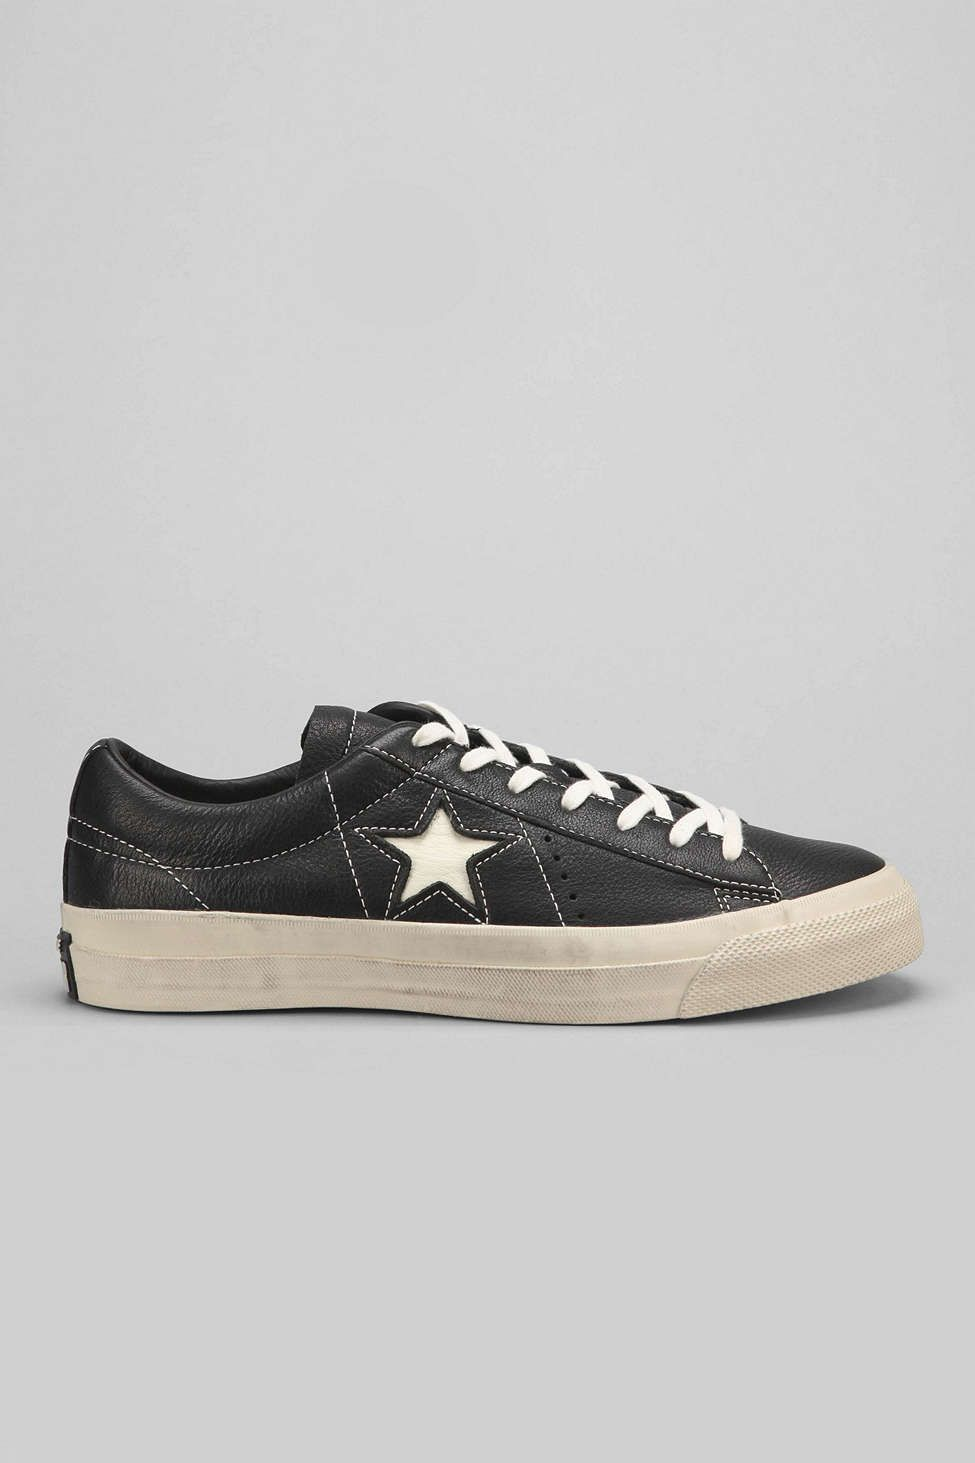 a7e5536caa27 John Varvatos X Converse Chuck Taylor All Star Cracked Leather Men s  Sneaker Jack Purcell